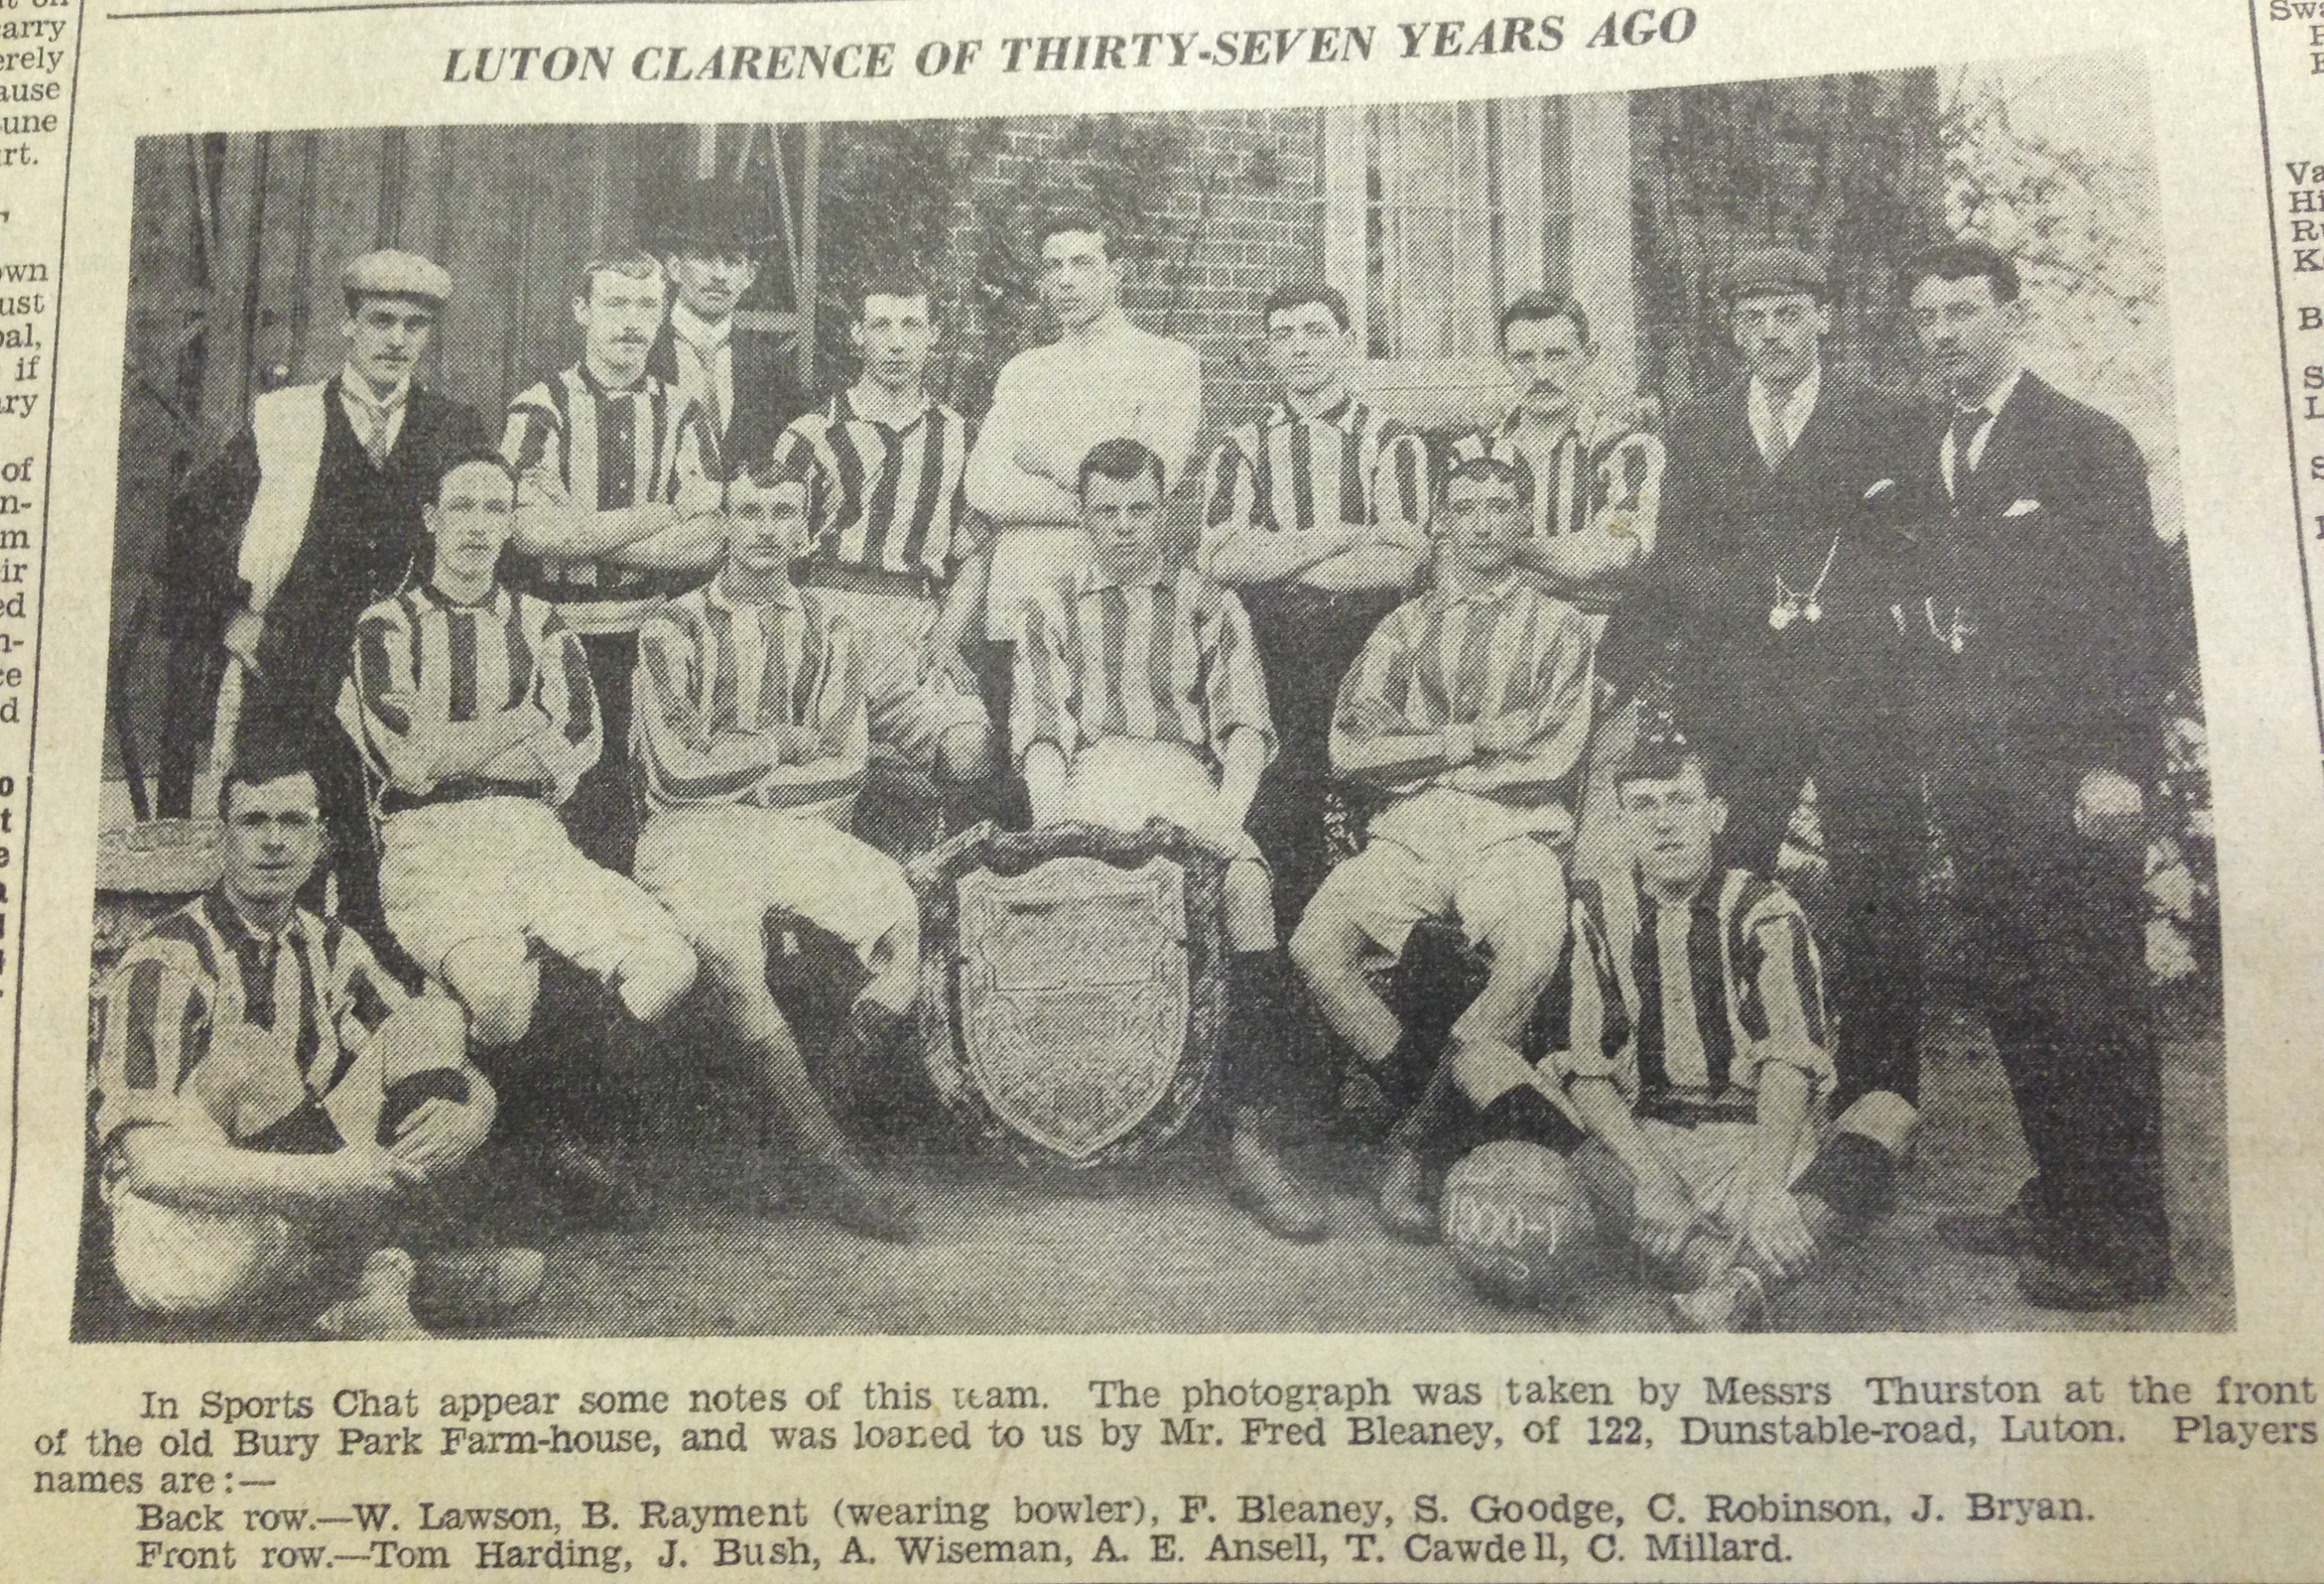 Luton Clarence 1900:01